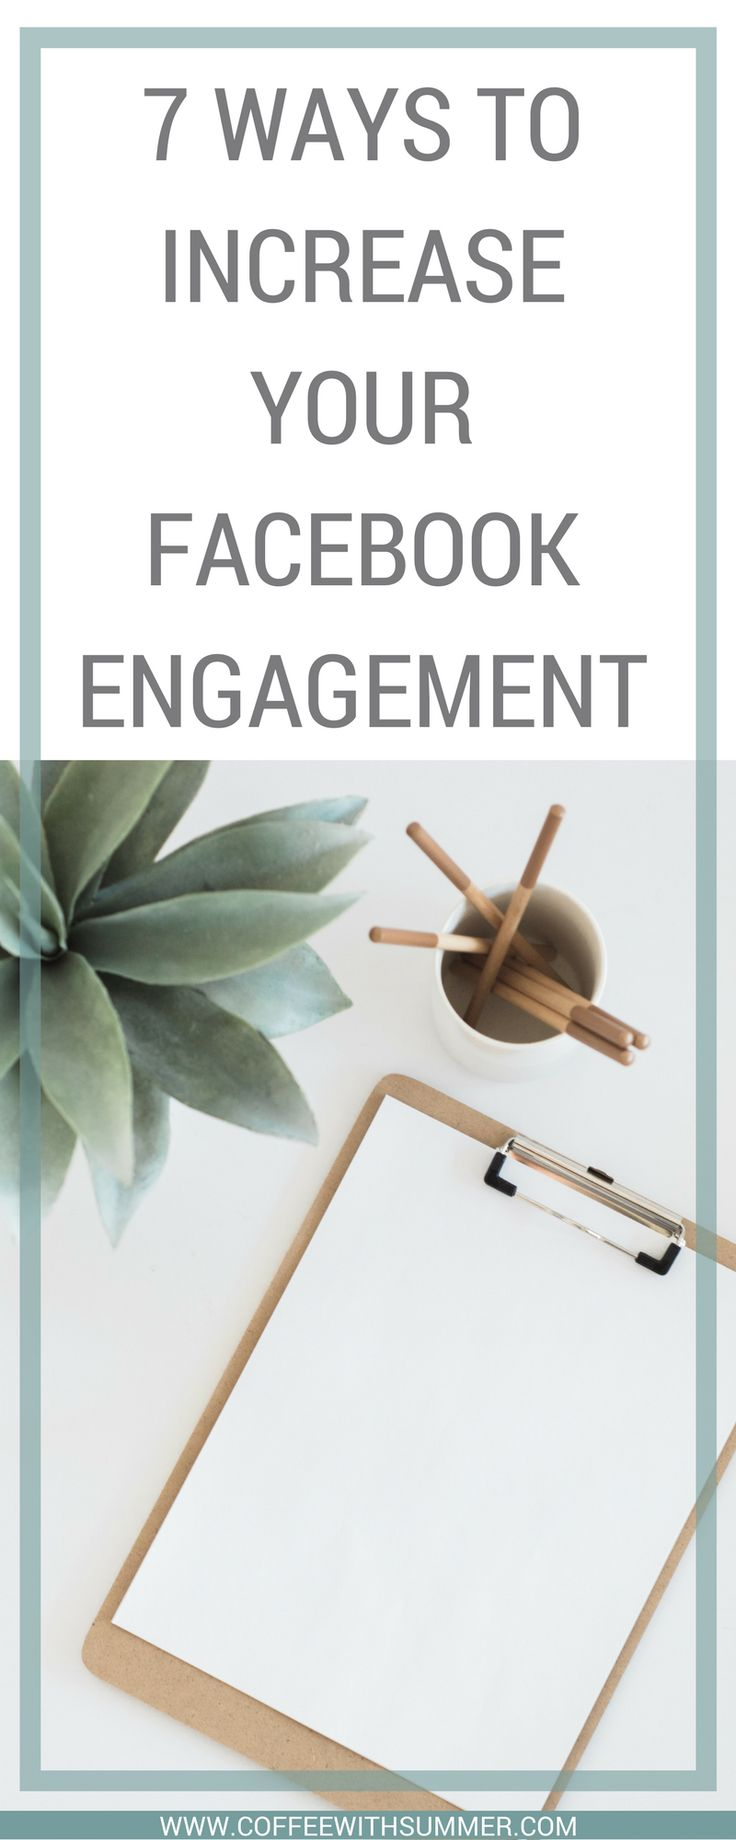 Bummed about your Facebook reach? Here are 7 tips to increasing your Facebook engagement (no matter the algorithm change!)